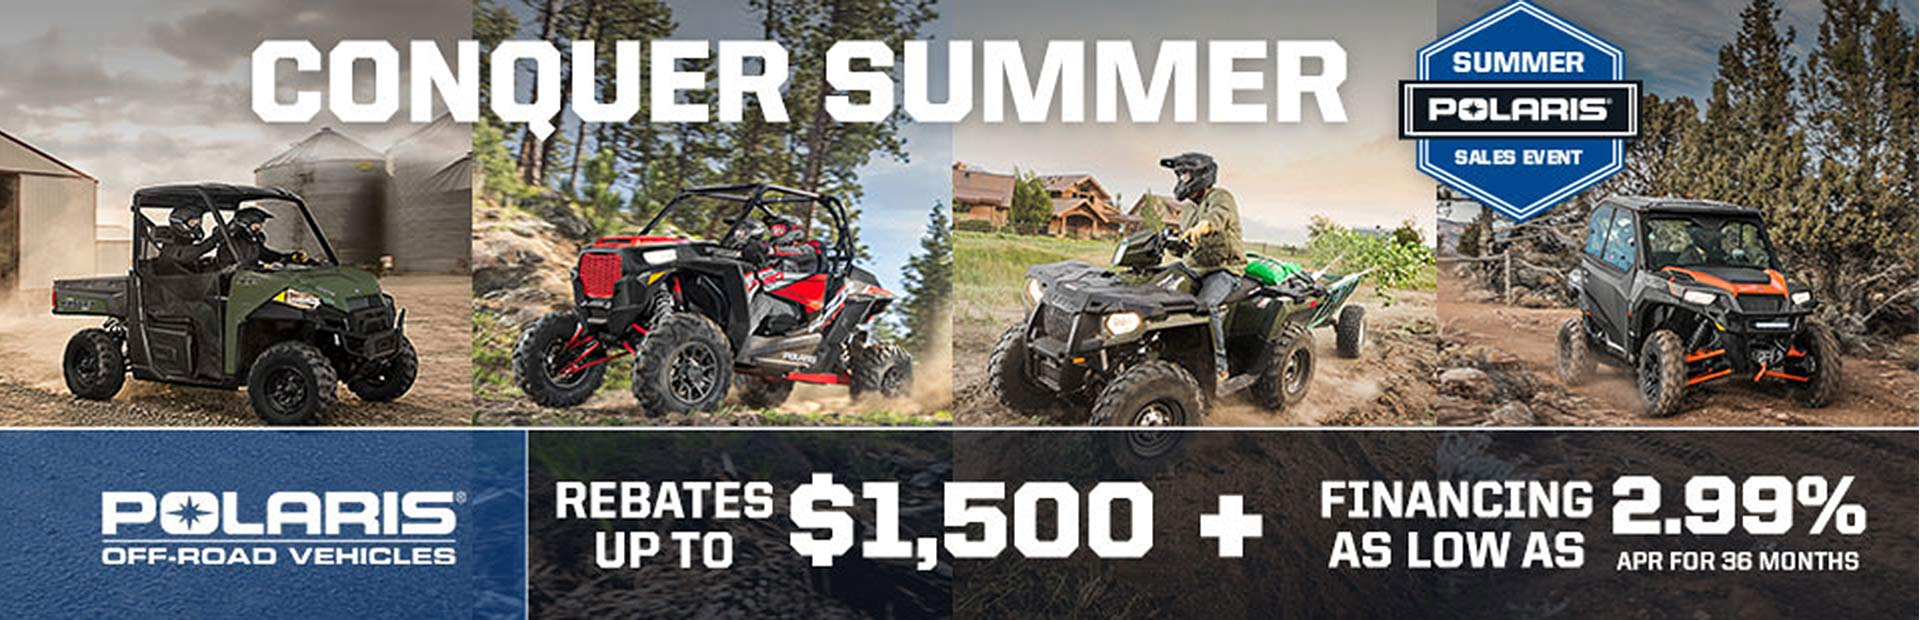 Polaris Summer Sales Event - Off-Road